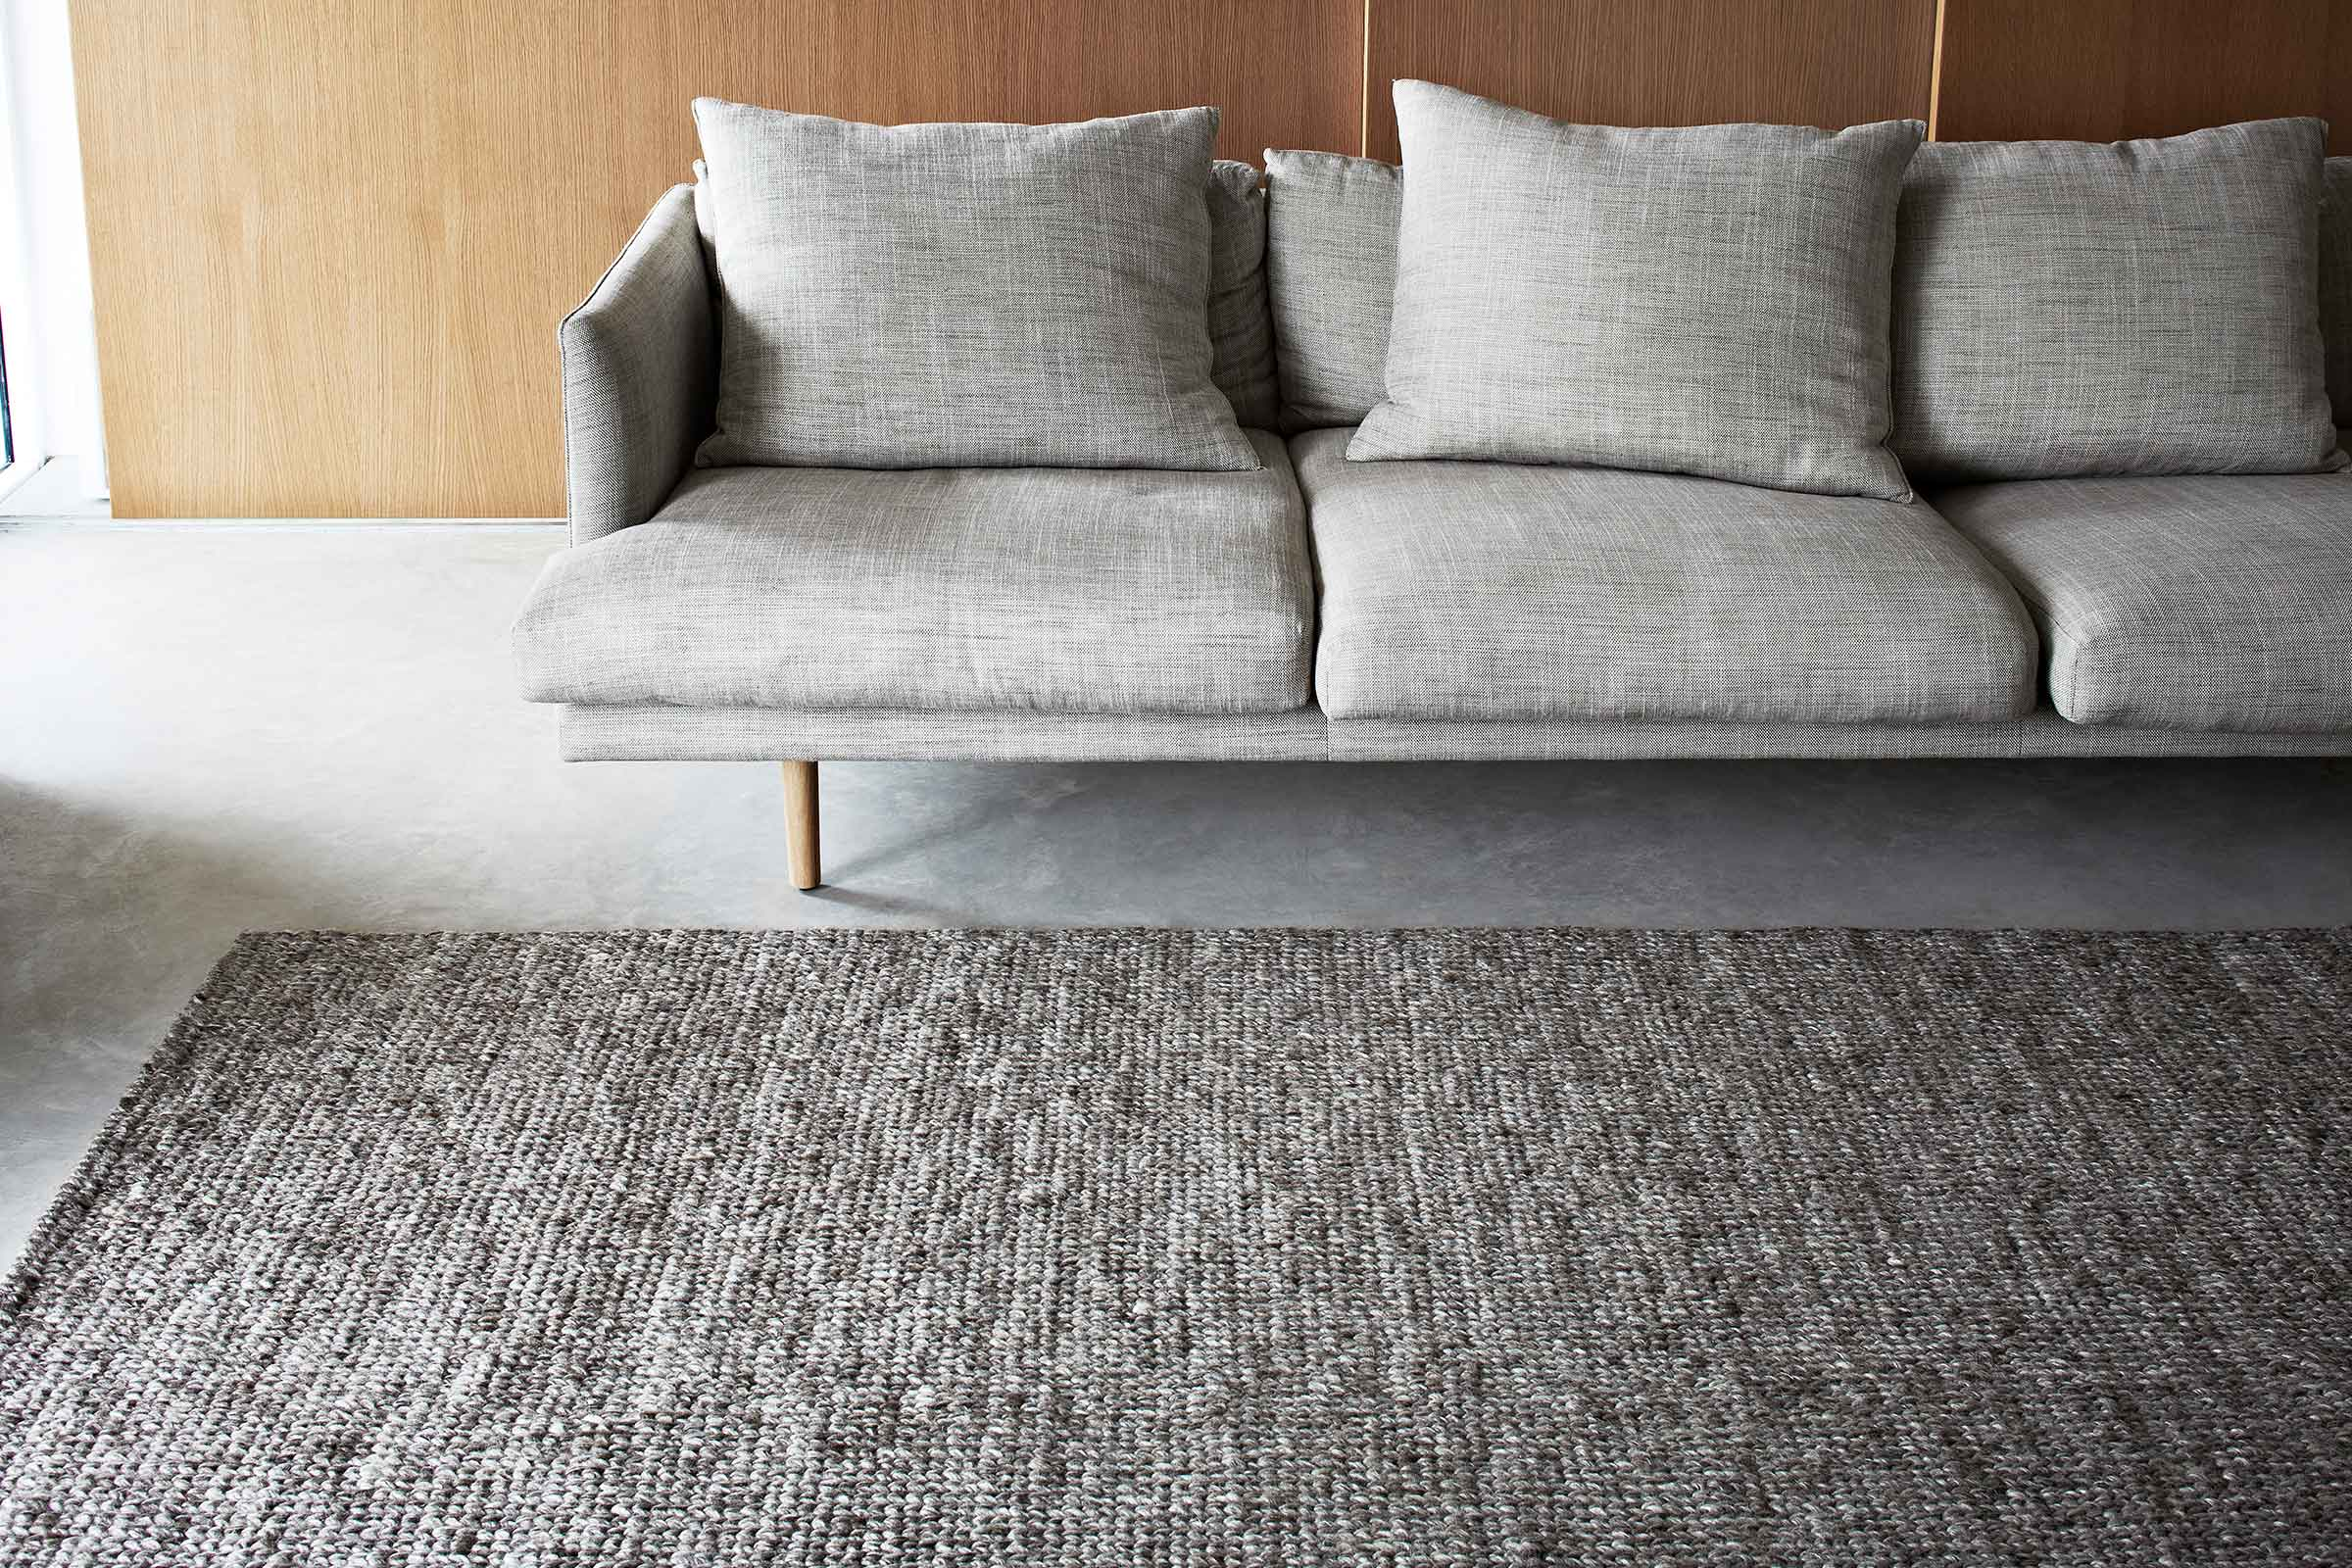 How To Choose The Right Rug For Your Place With Hunting For George